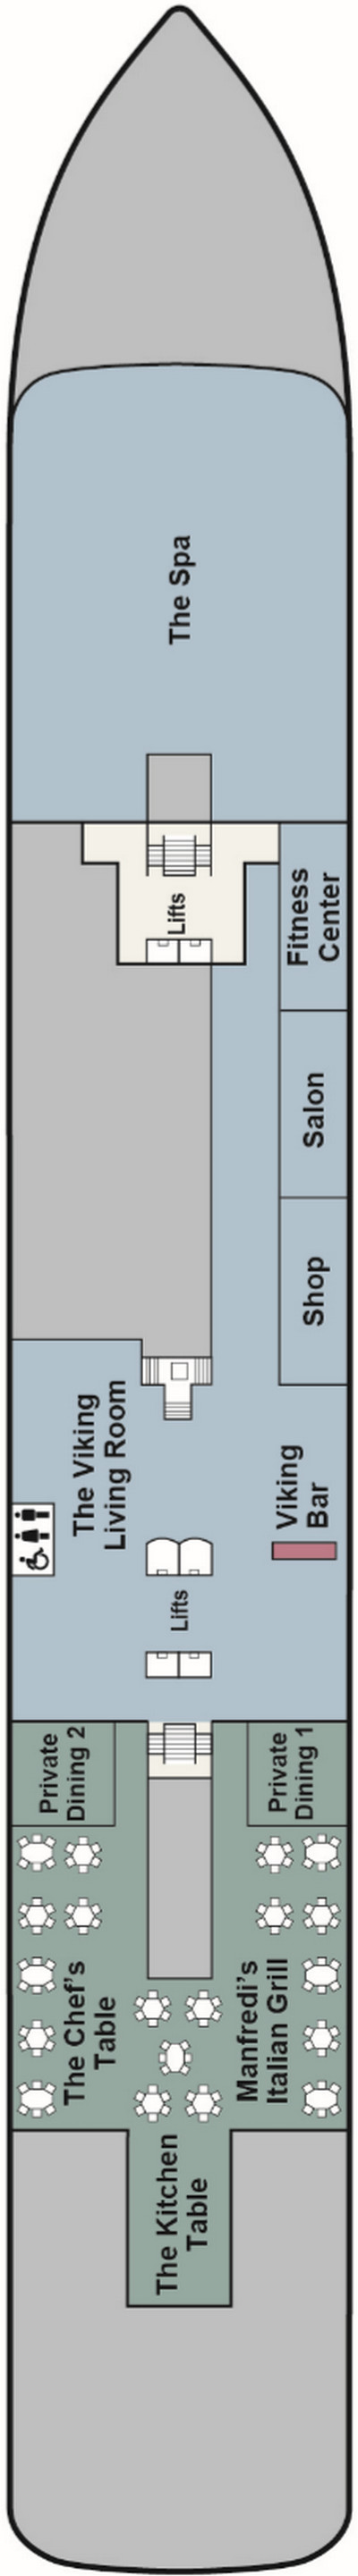 Viking Sun Deck 1 layout